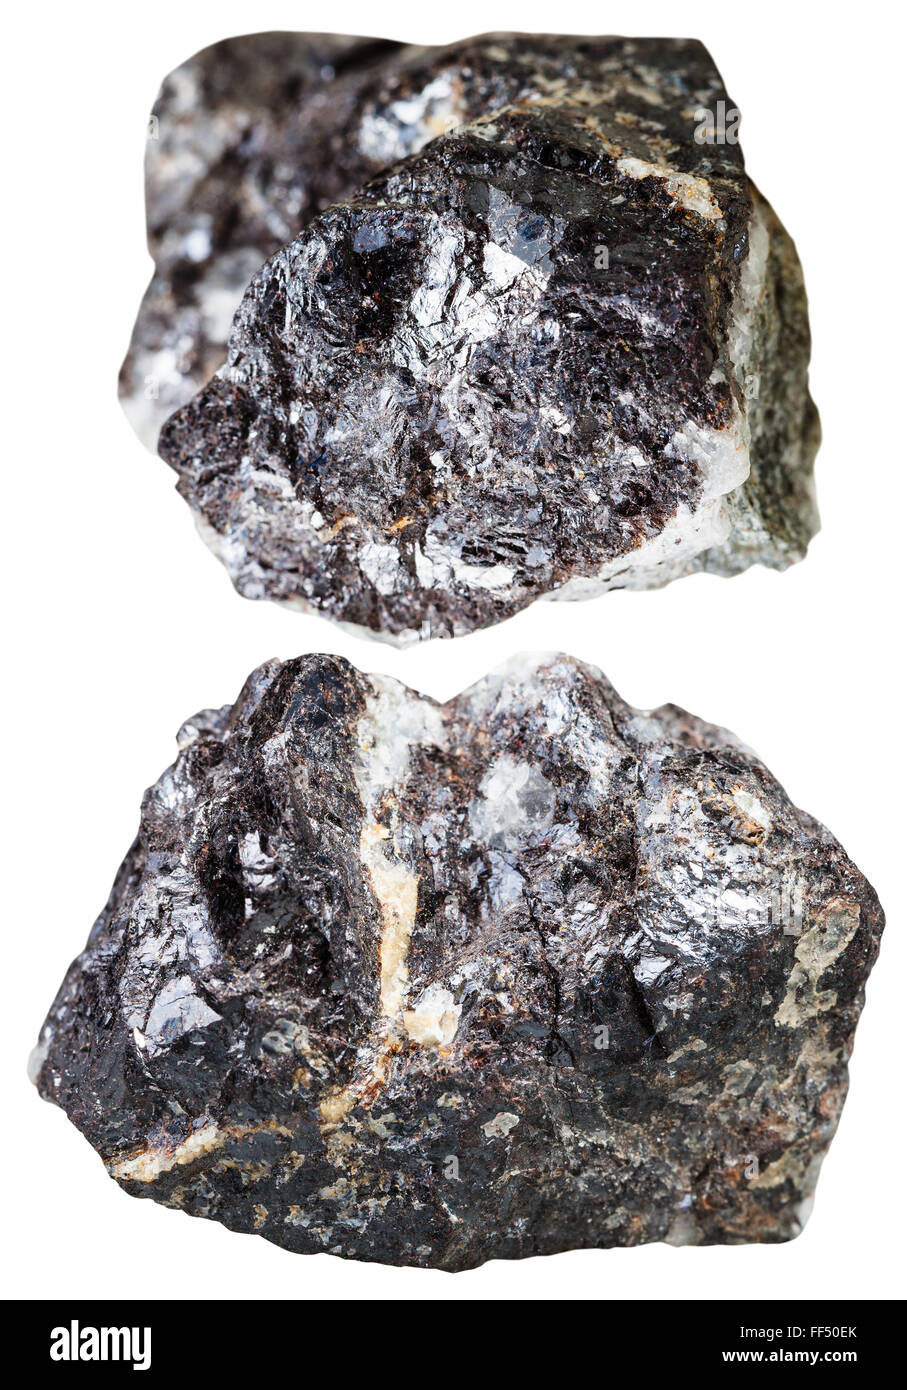 macro shooting of natural mineral stone - two pieces of sphalerite (zinc blende) rock isolated on white background - Stock Image